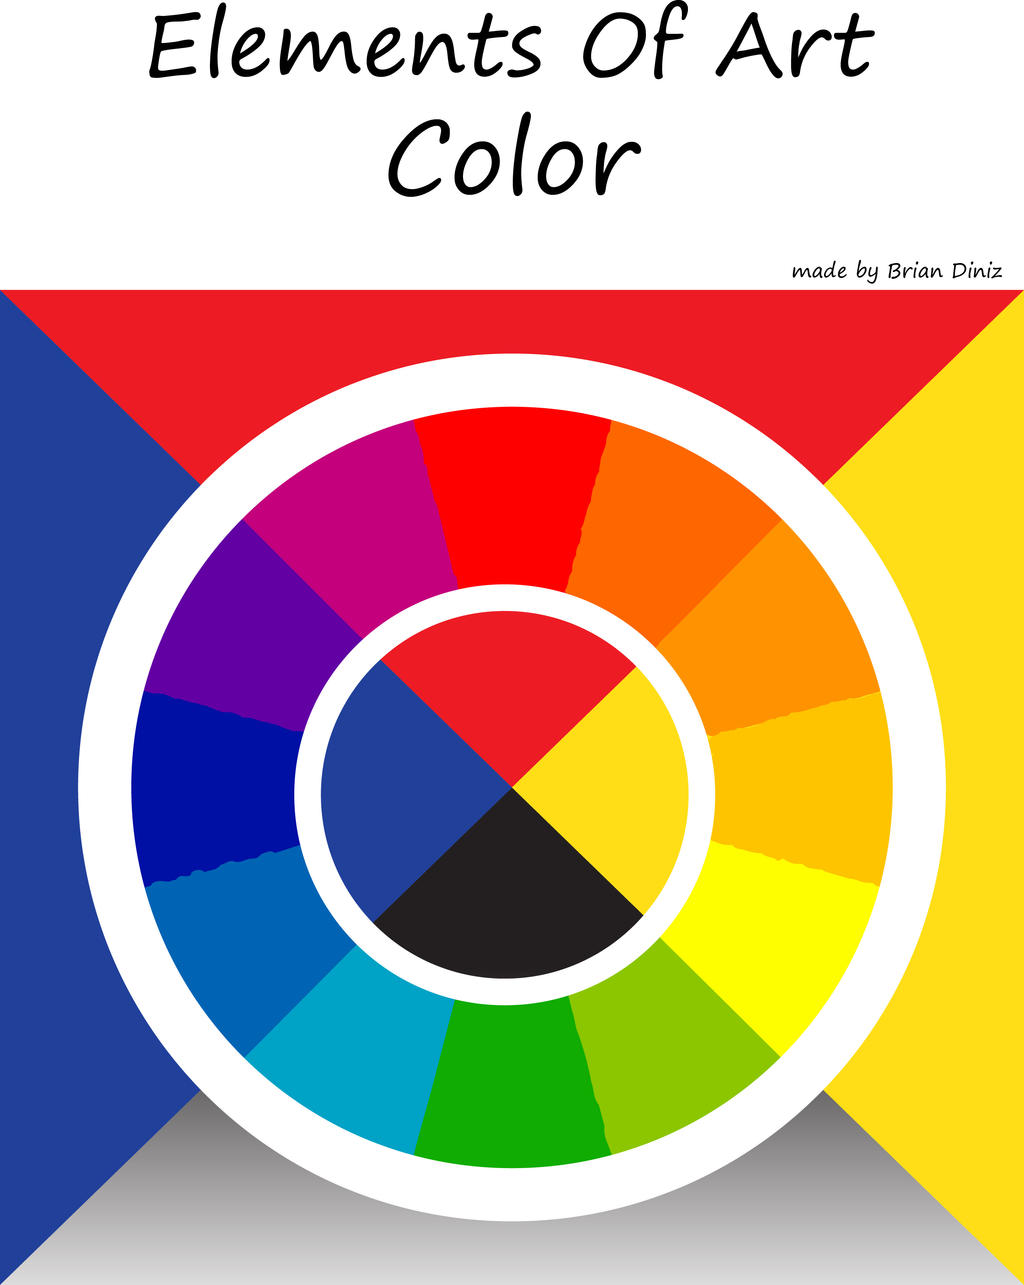 Six Elements Of Art : Elements of art color by briandnz on deviantart